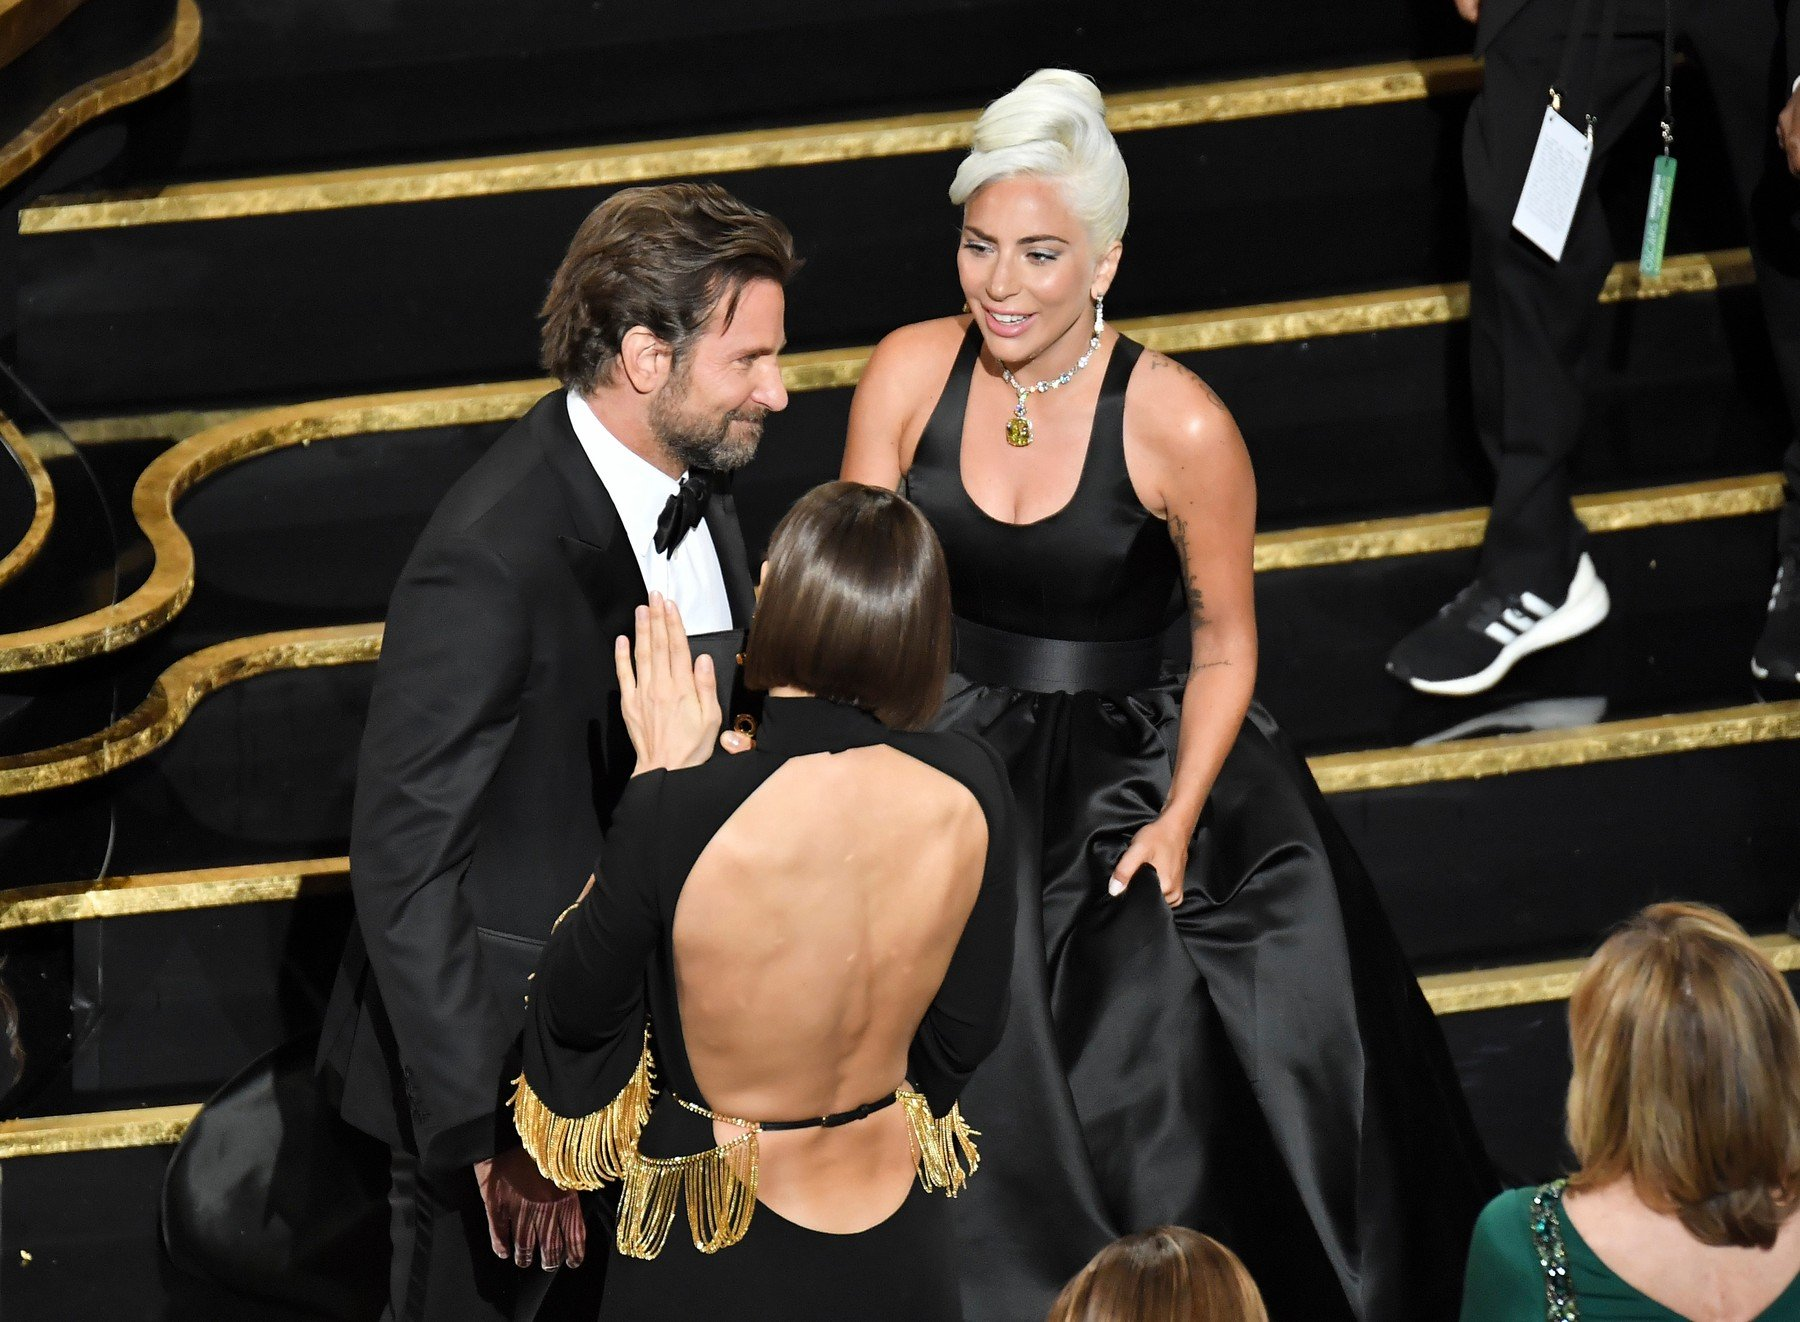 Bradley Cooper, Irina Shayk and Lady Gaga 91st Annual Academy Awards, Show, Los Angeles, USA - 24 Feb 2019, Image: 415749642, License: Rights-managed, Restrictions: , Model Release: no, Credit line: Profimedia, TEMP Rex Features